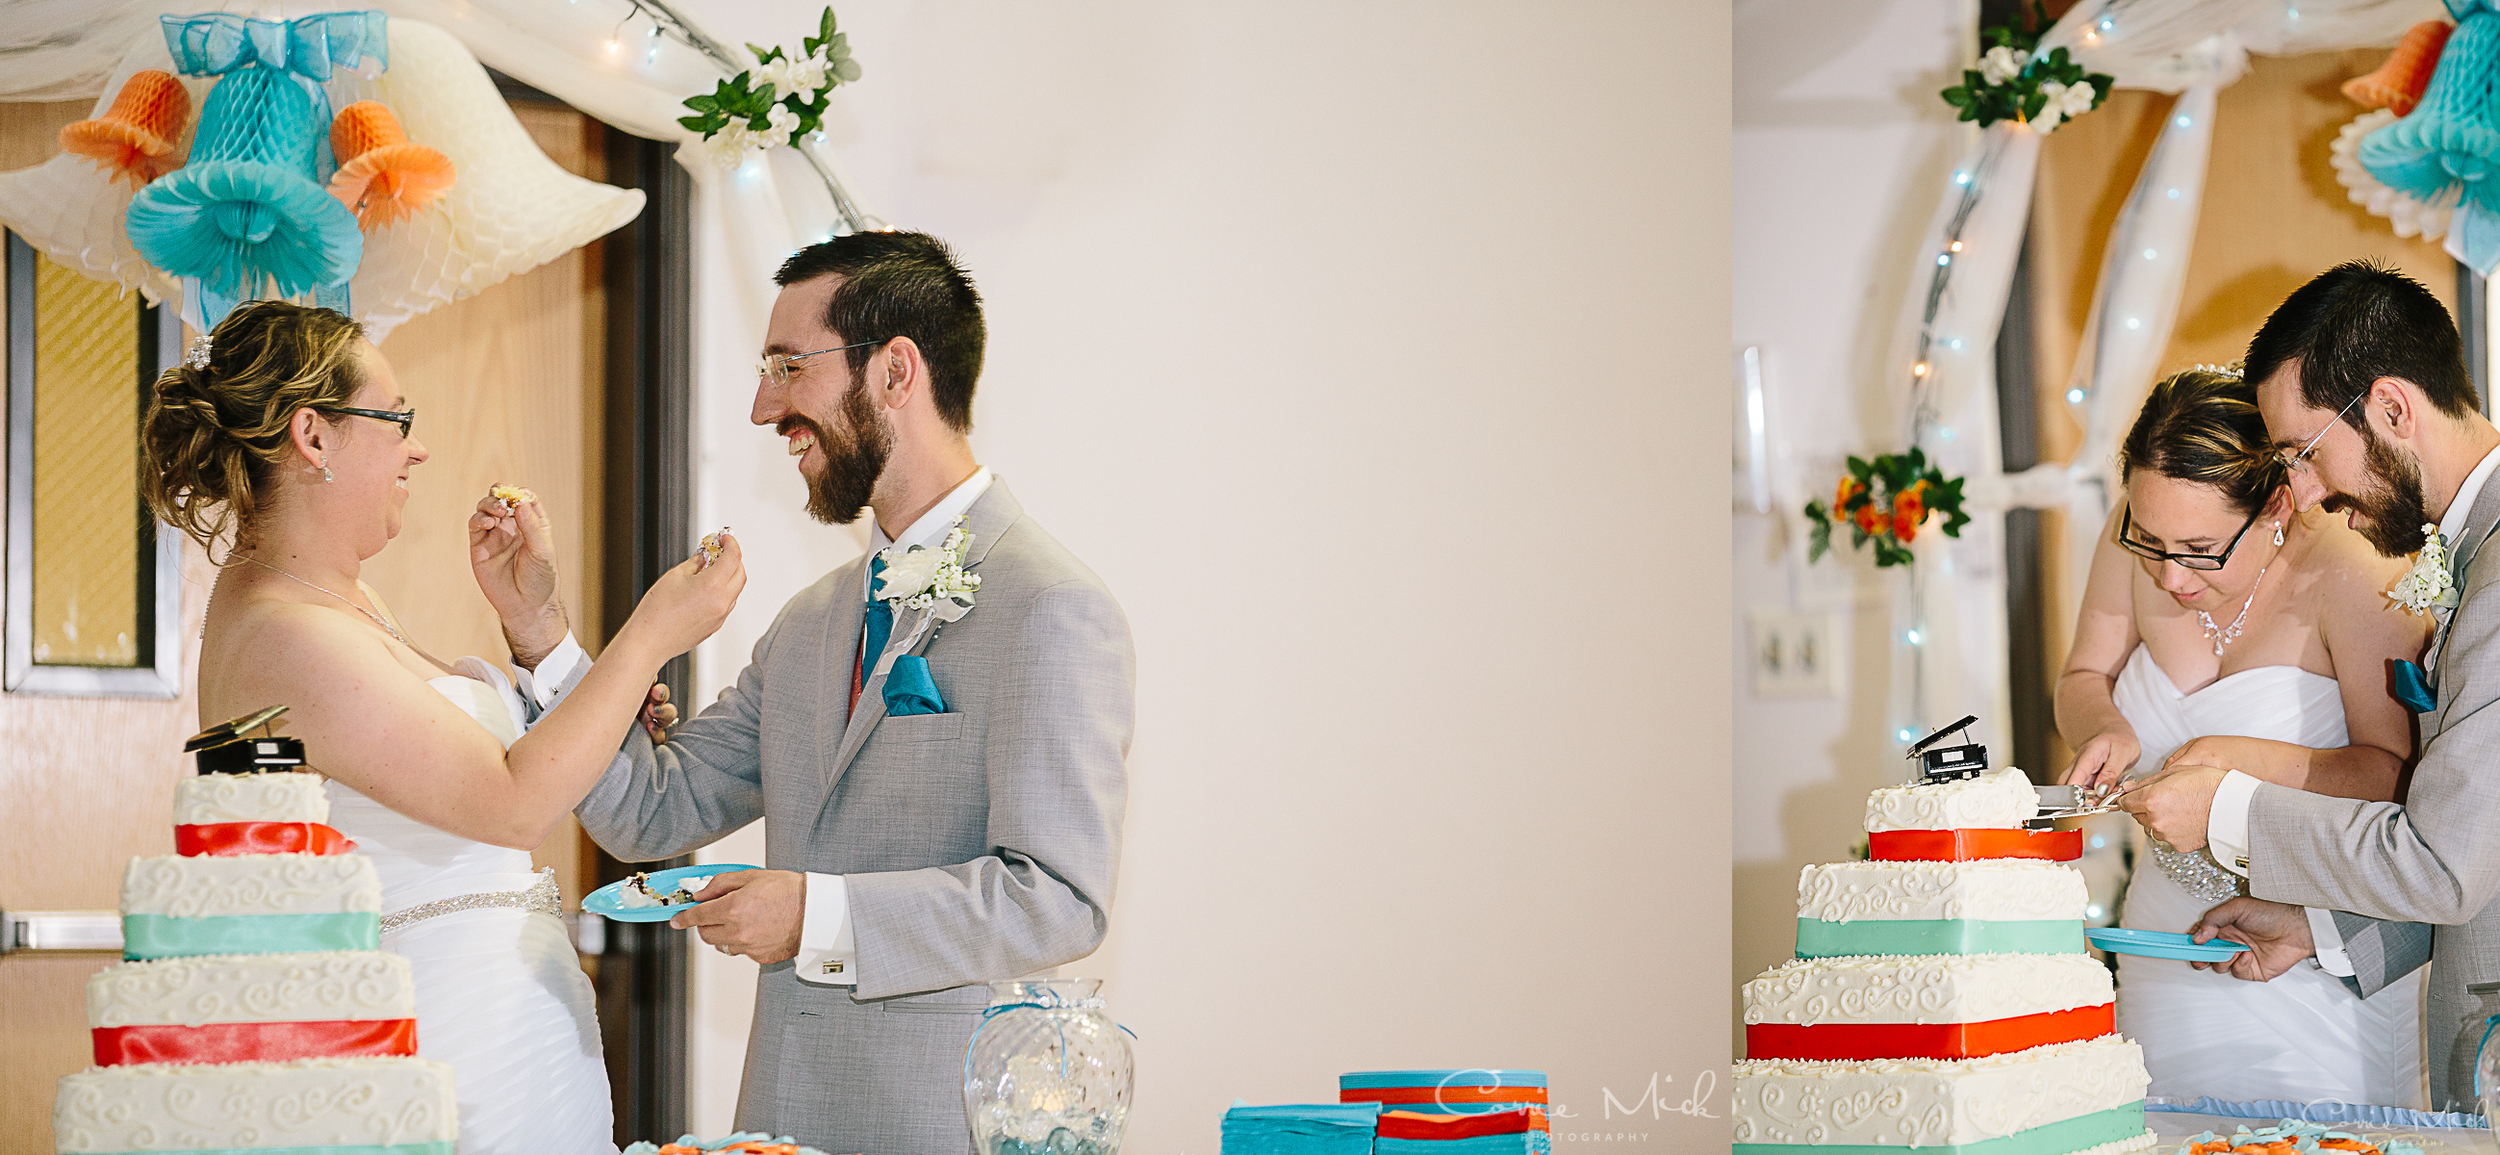 Cutting the Cake - Corrie Mick Photography.jpg